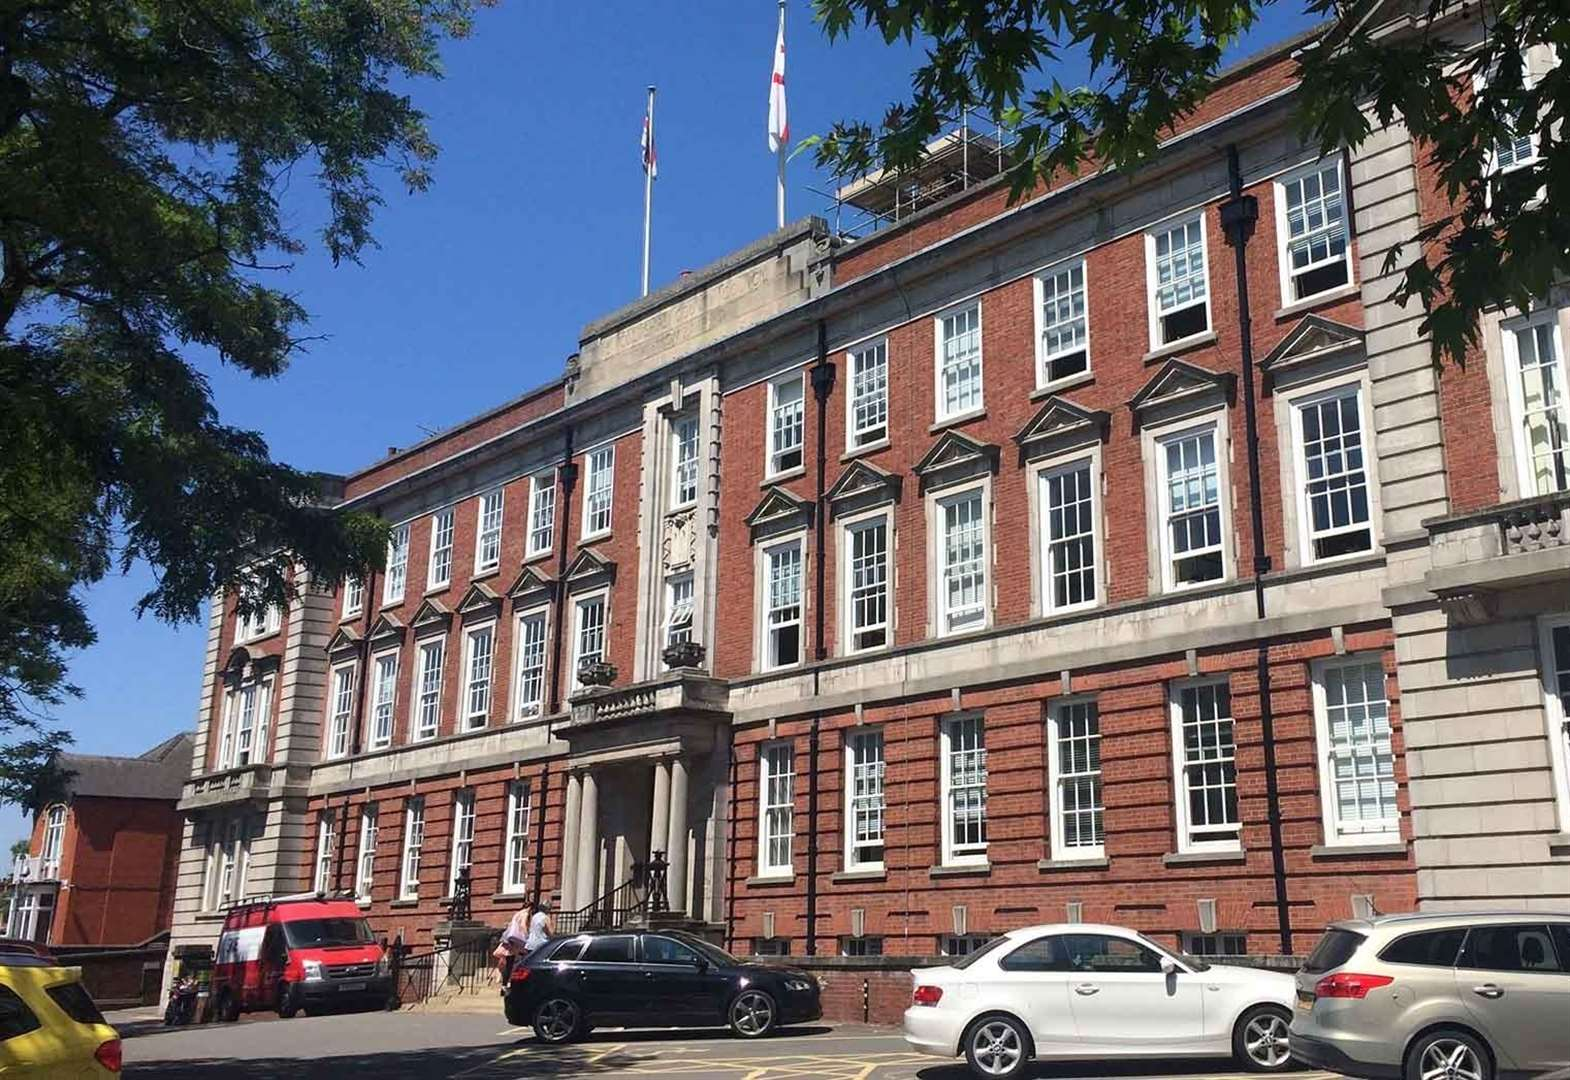 Council tax increase given green light by councillors